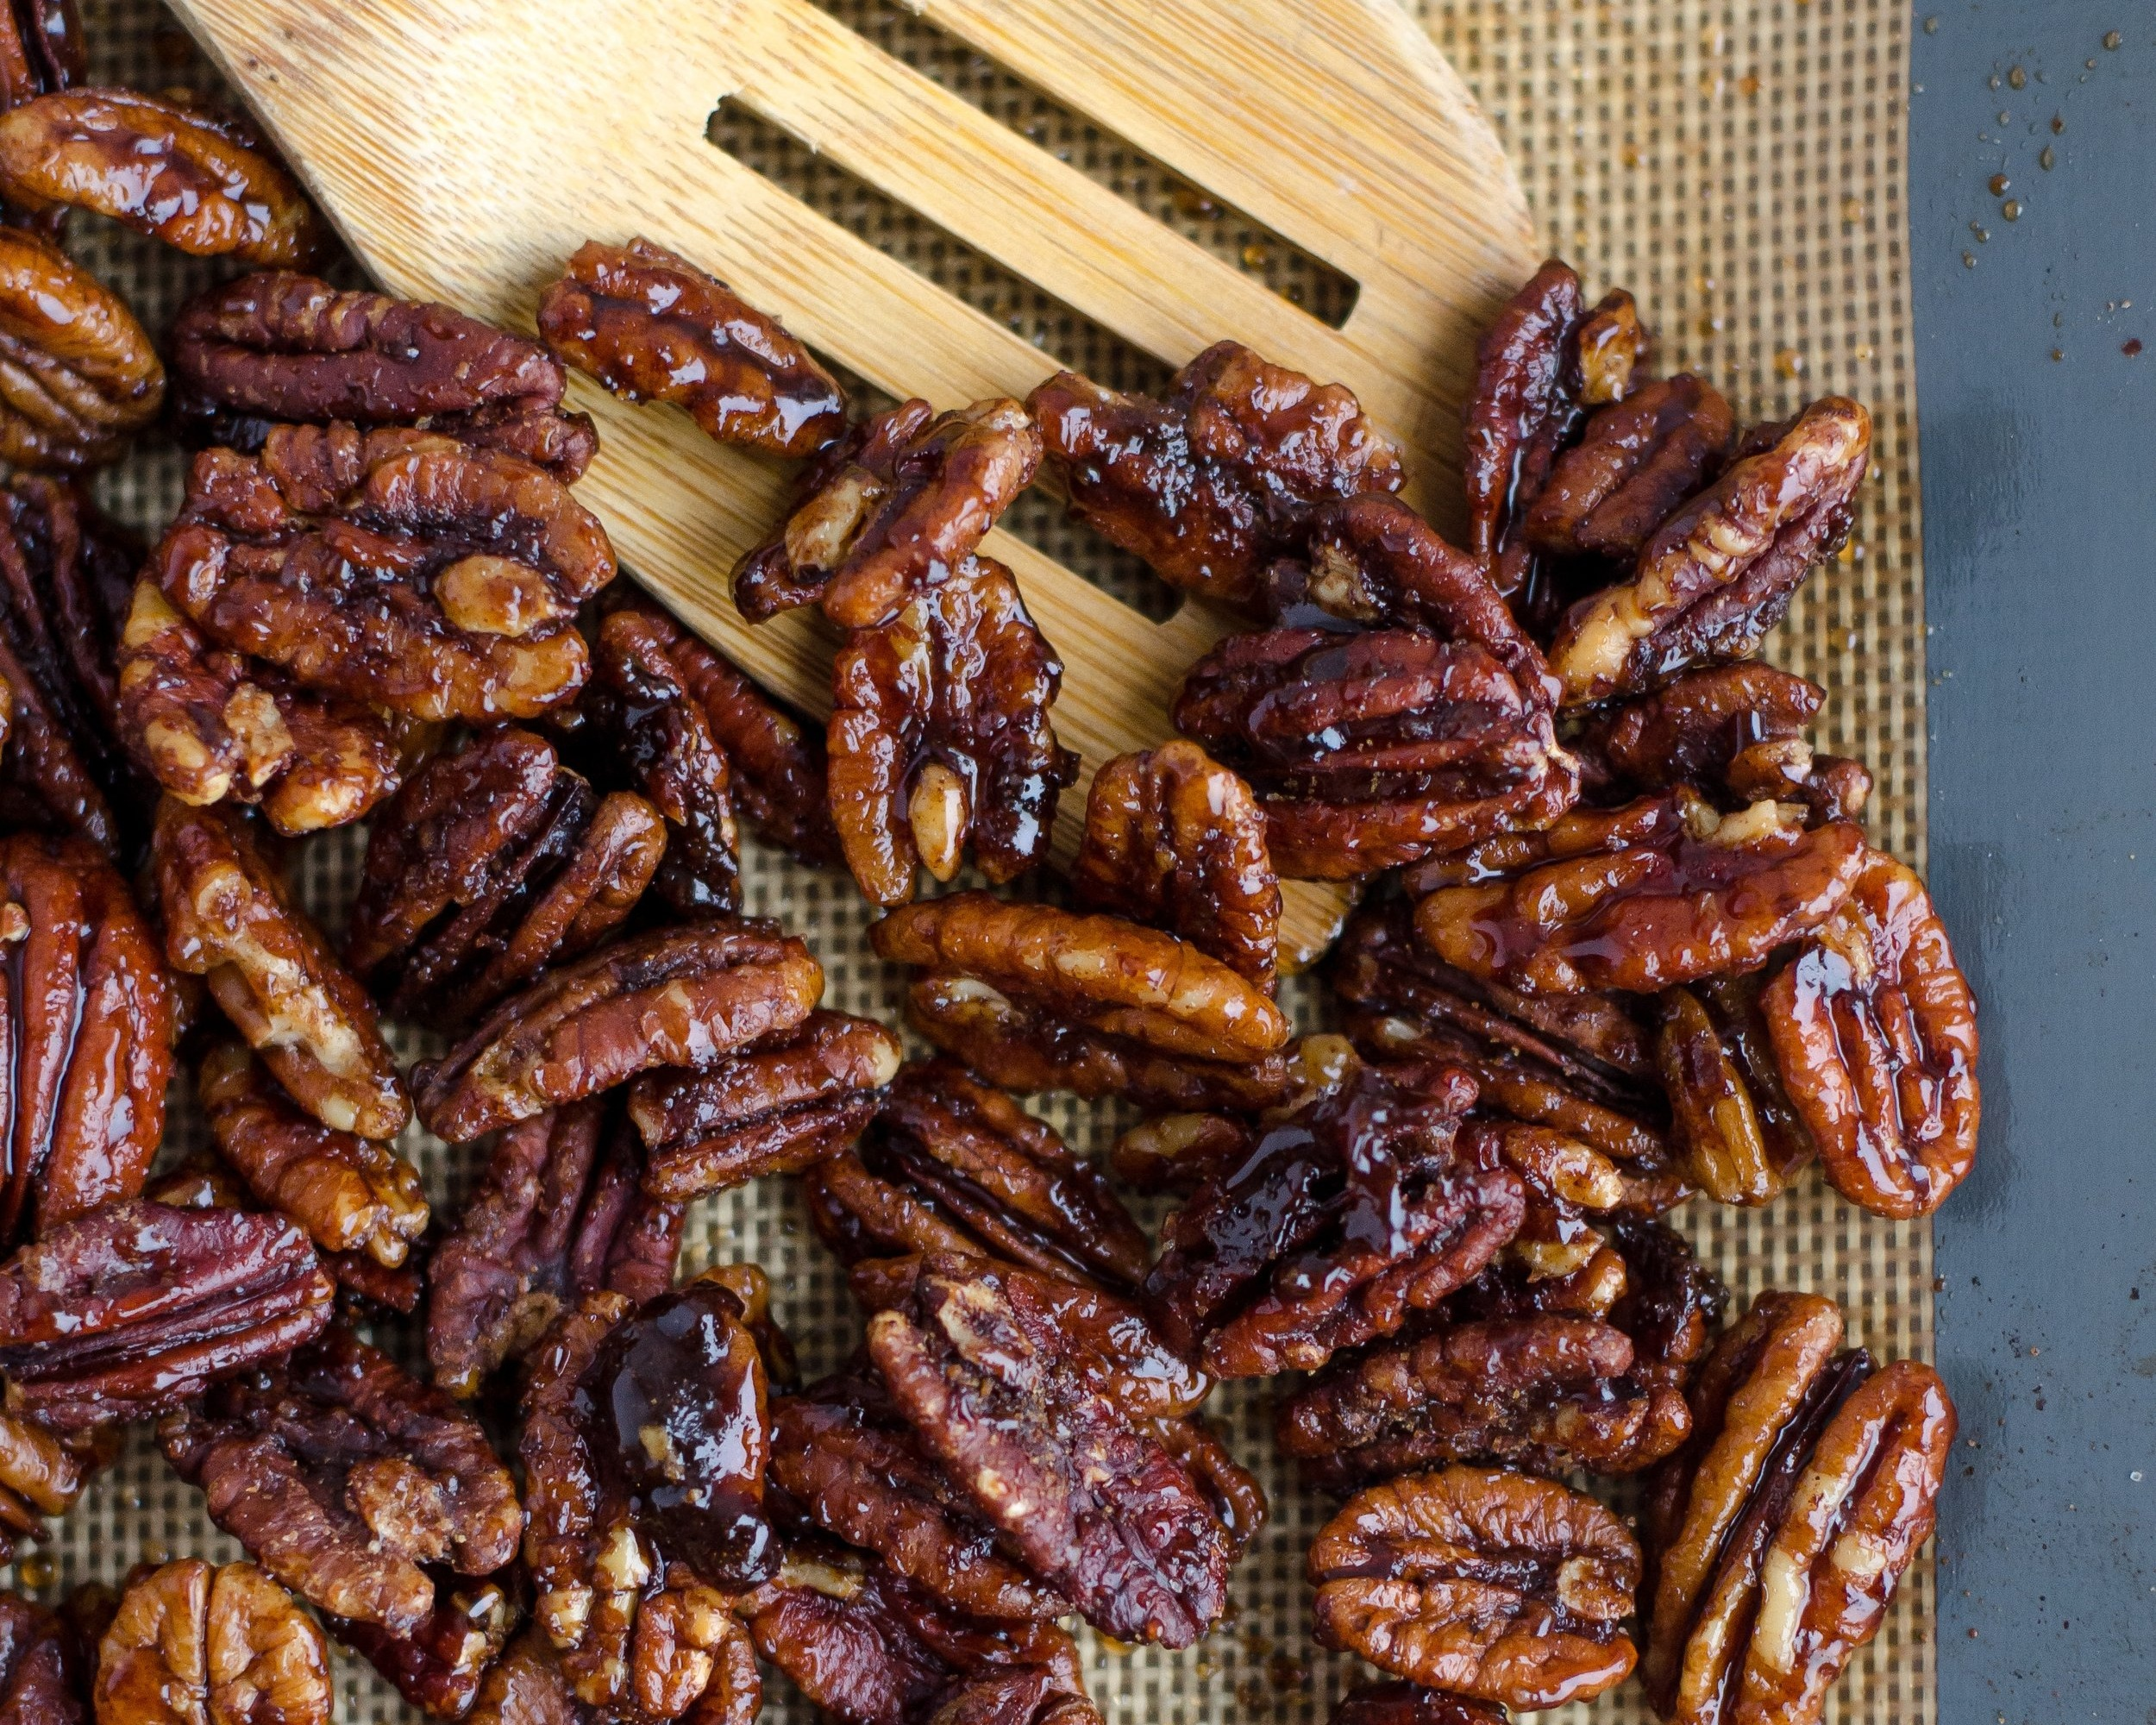 Silk Road Spiced Nuts -